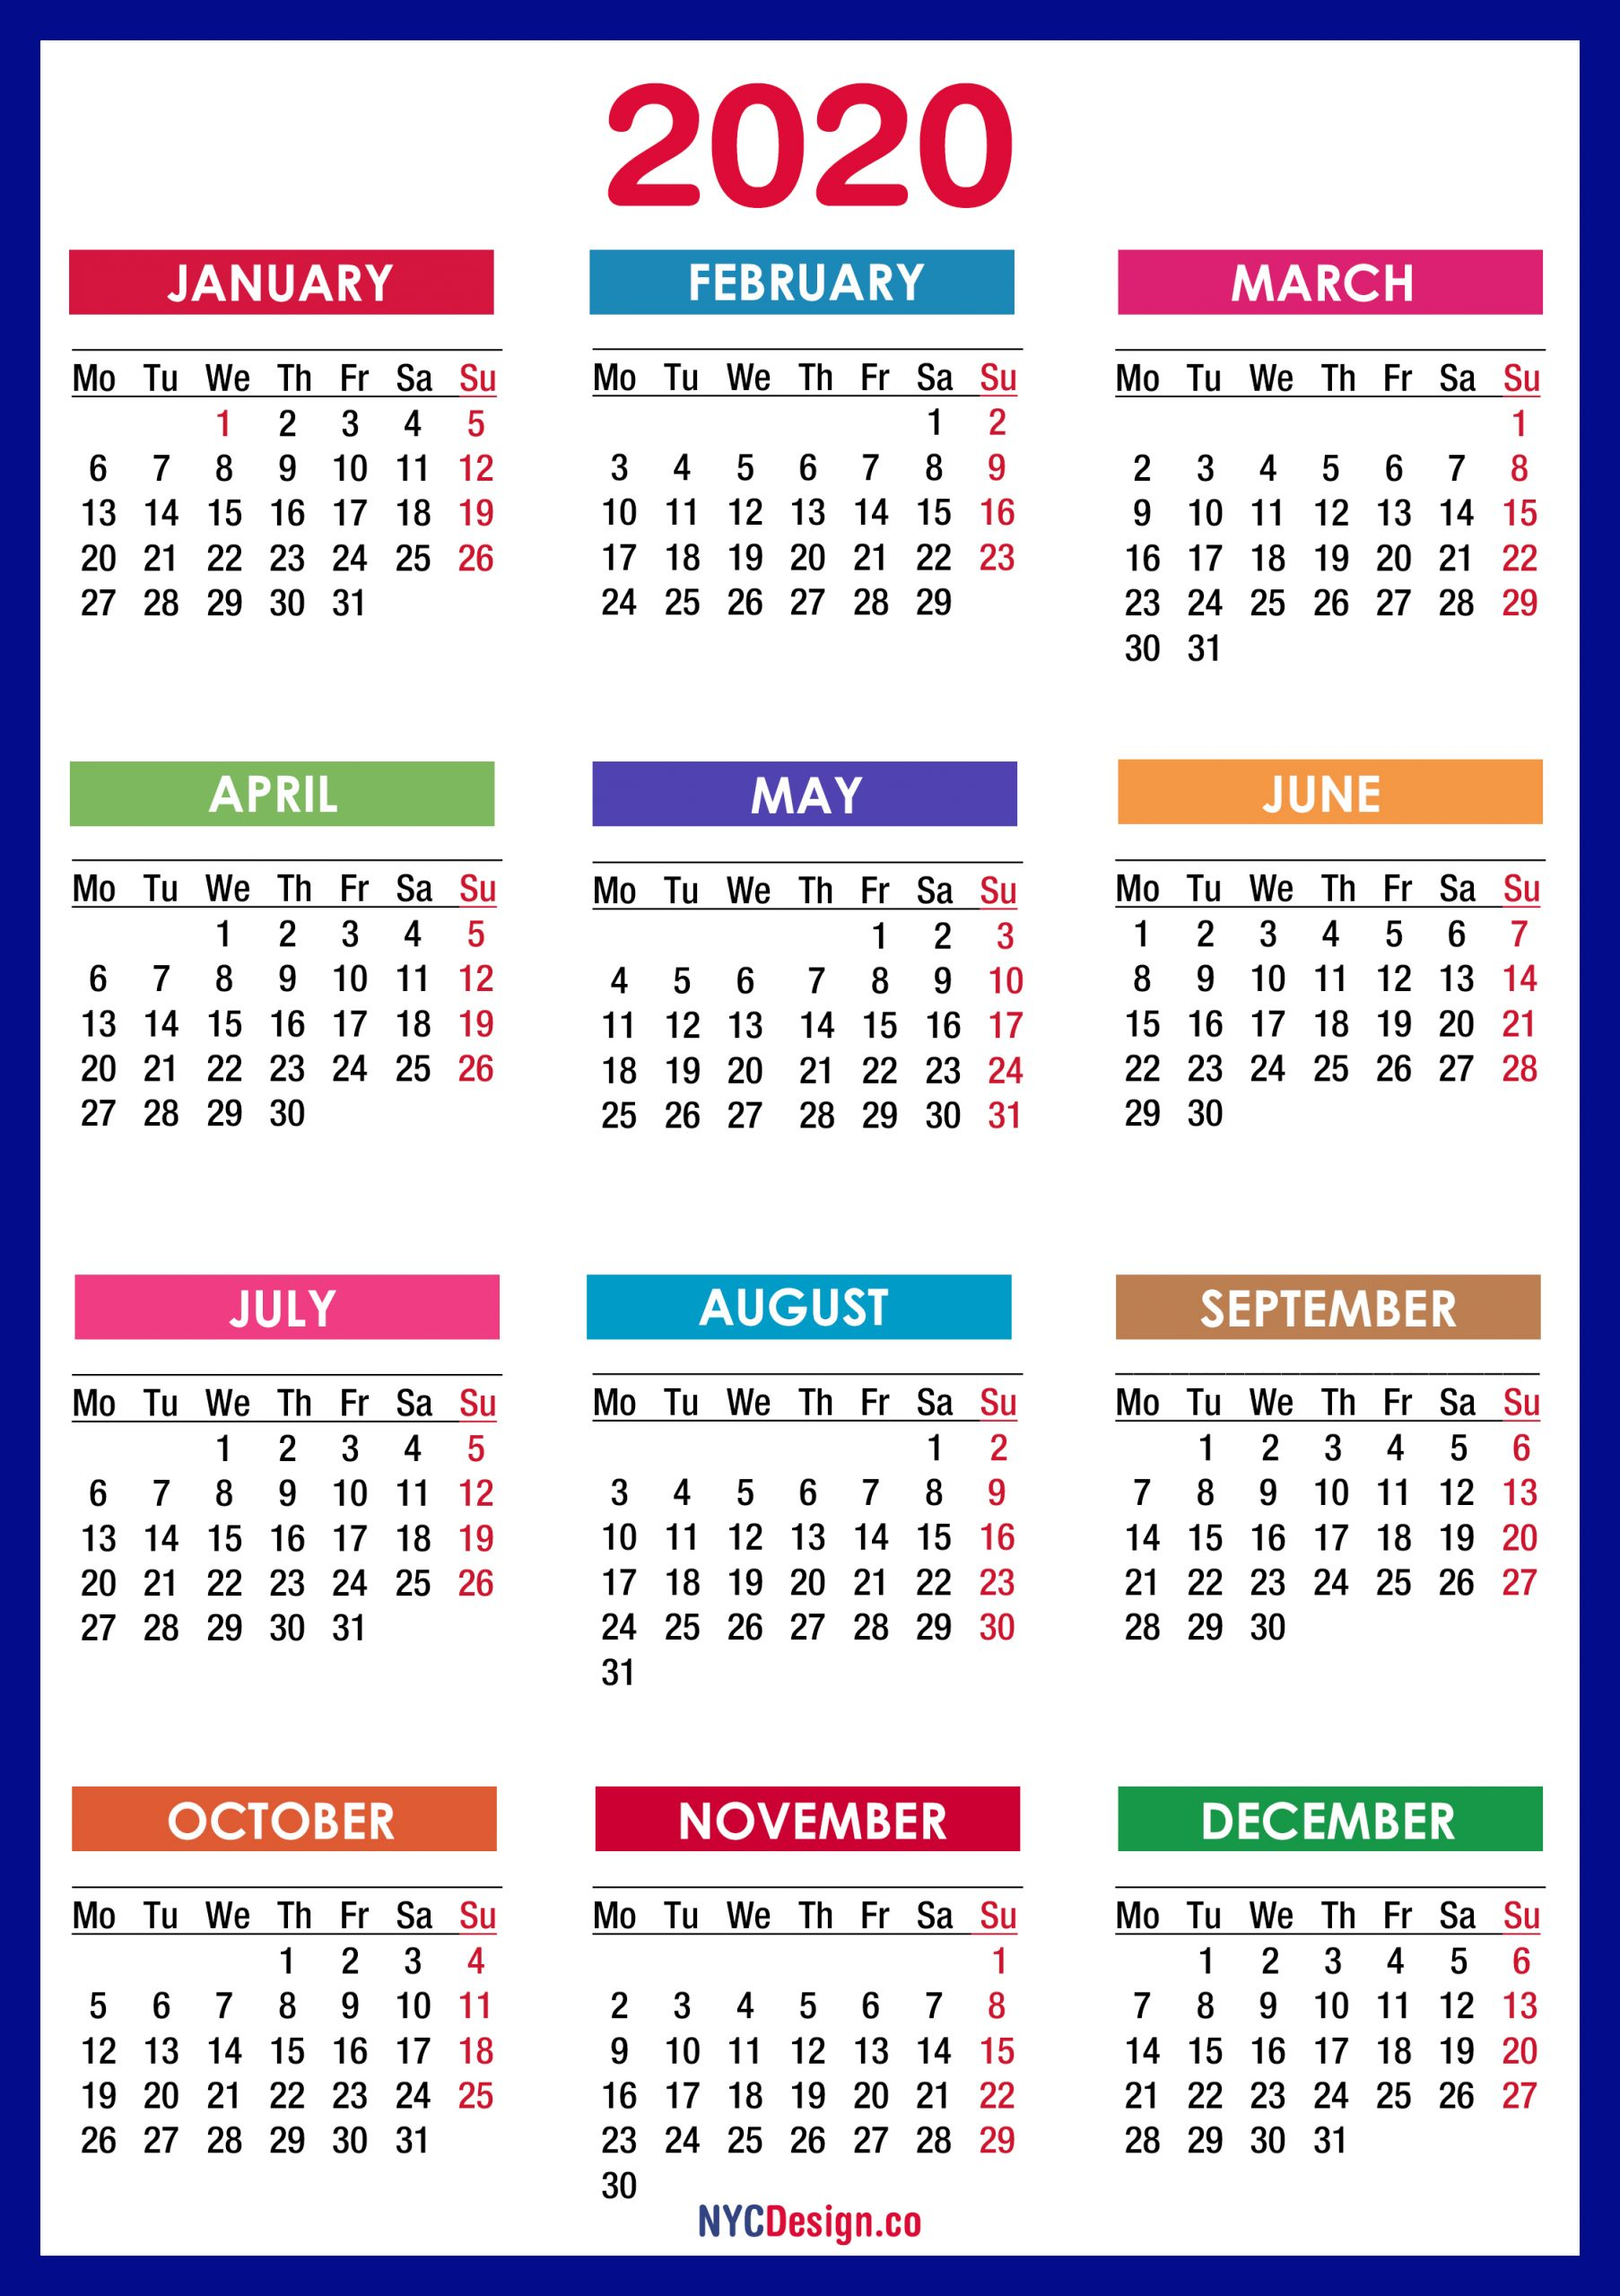 2020 Calendar Printable Free, Pdf, Colorful, Blue, Green